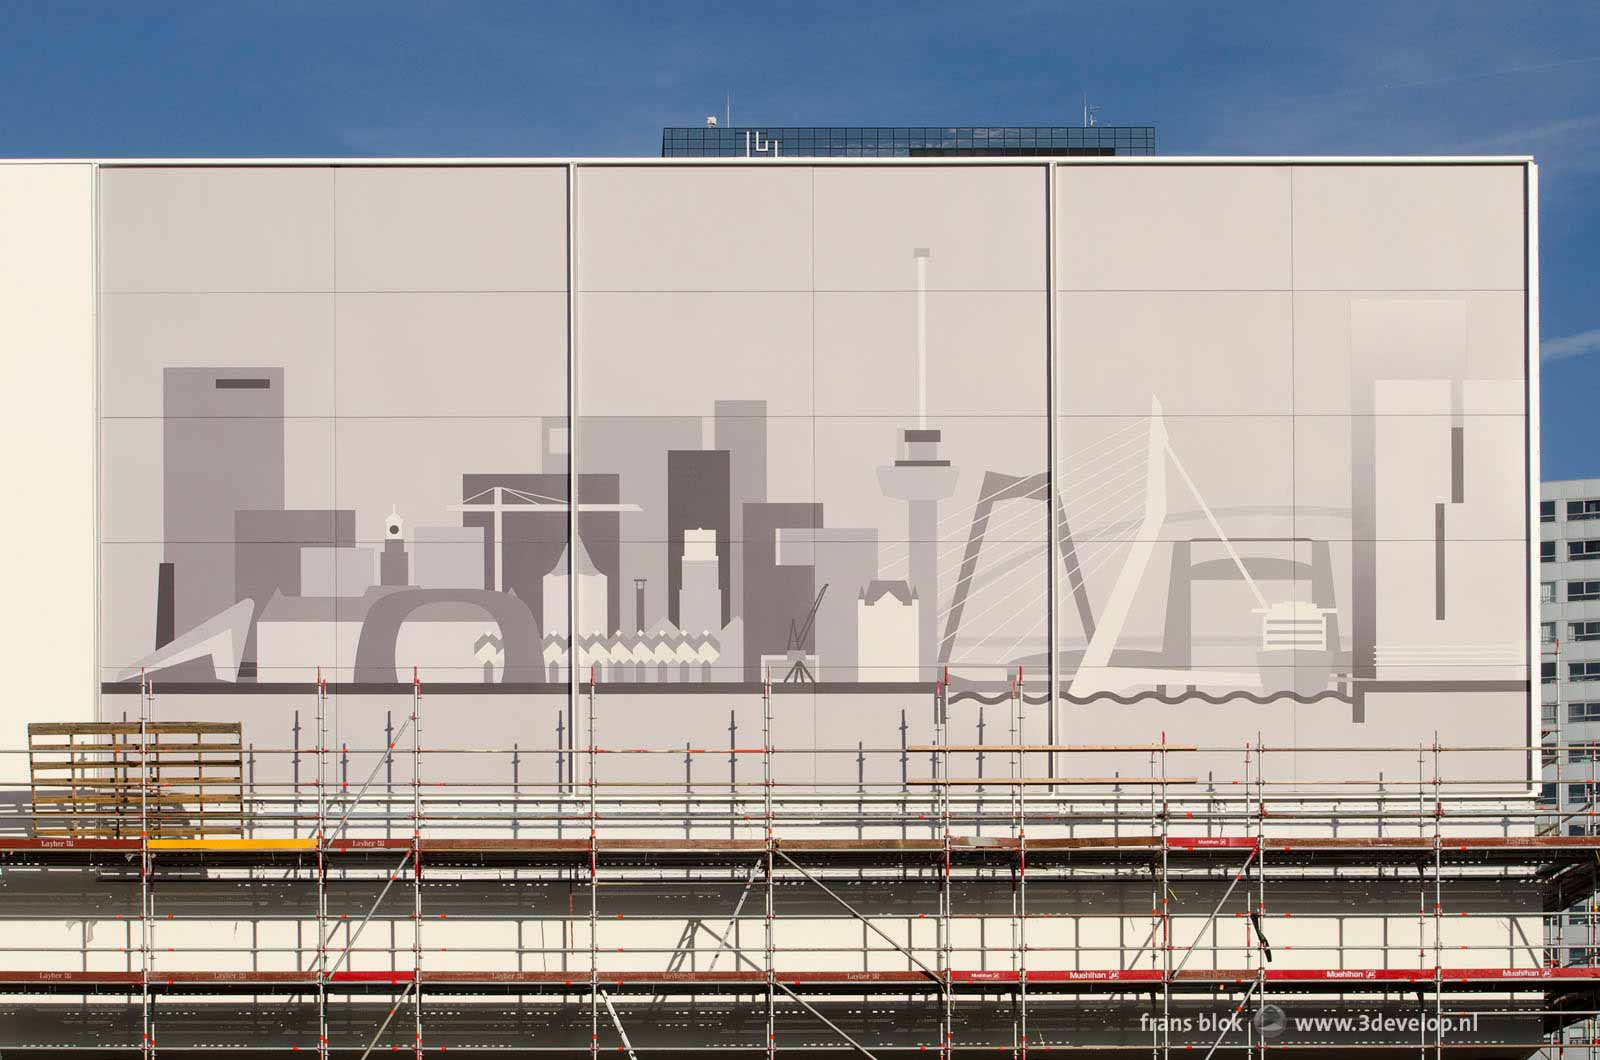 The façade of the Pathé cinema on the Schouwburgplein, partly still in scaffolding, with the image of the Rotterdam skyline